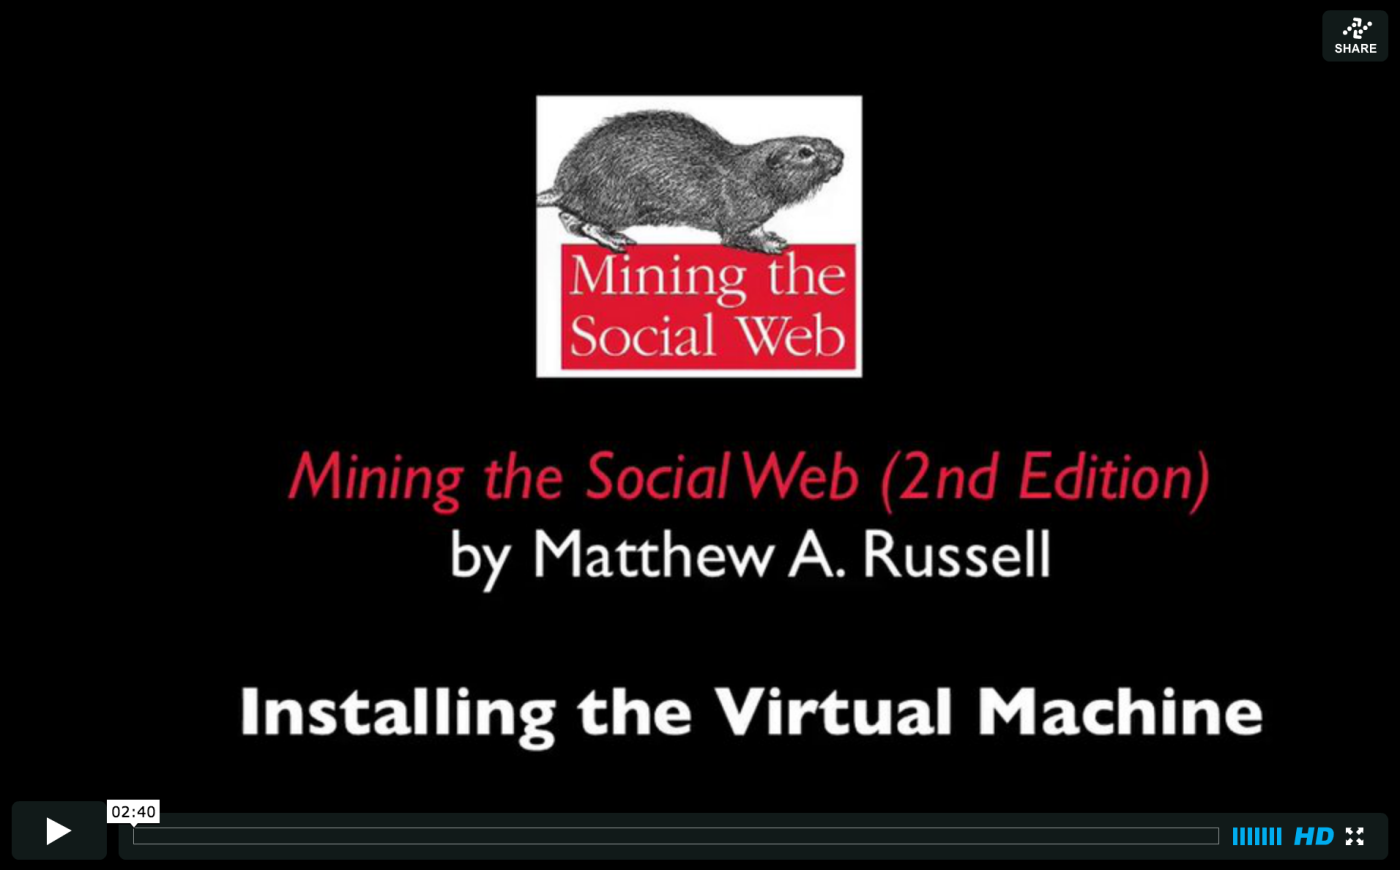 Installing the Virtual Machine